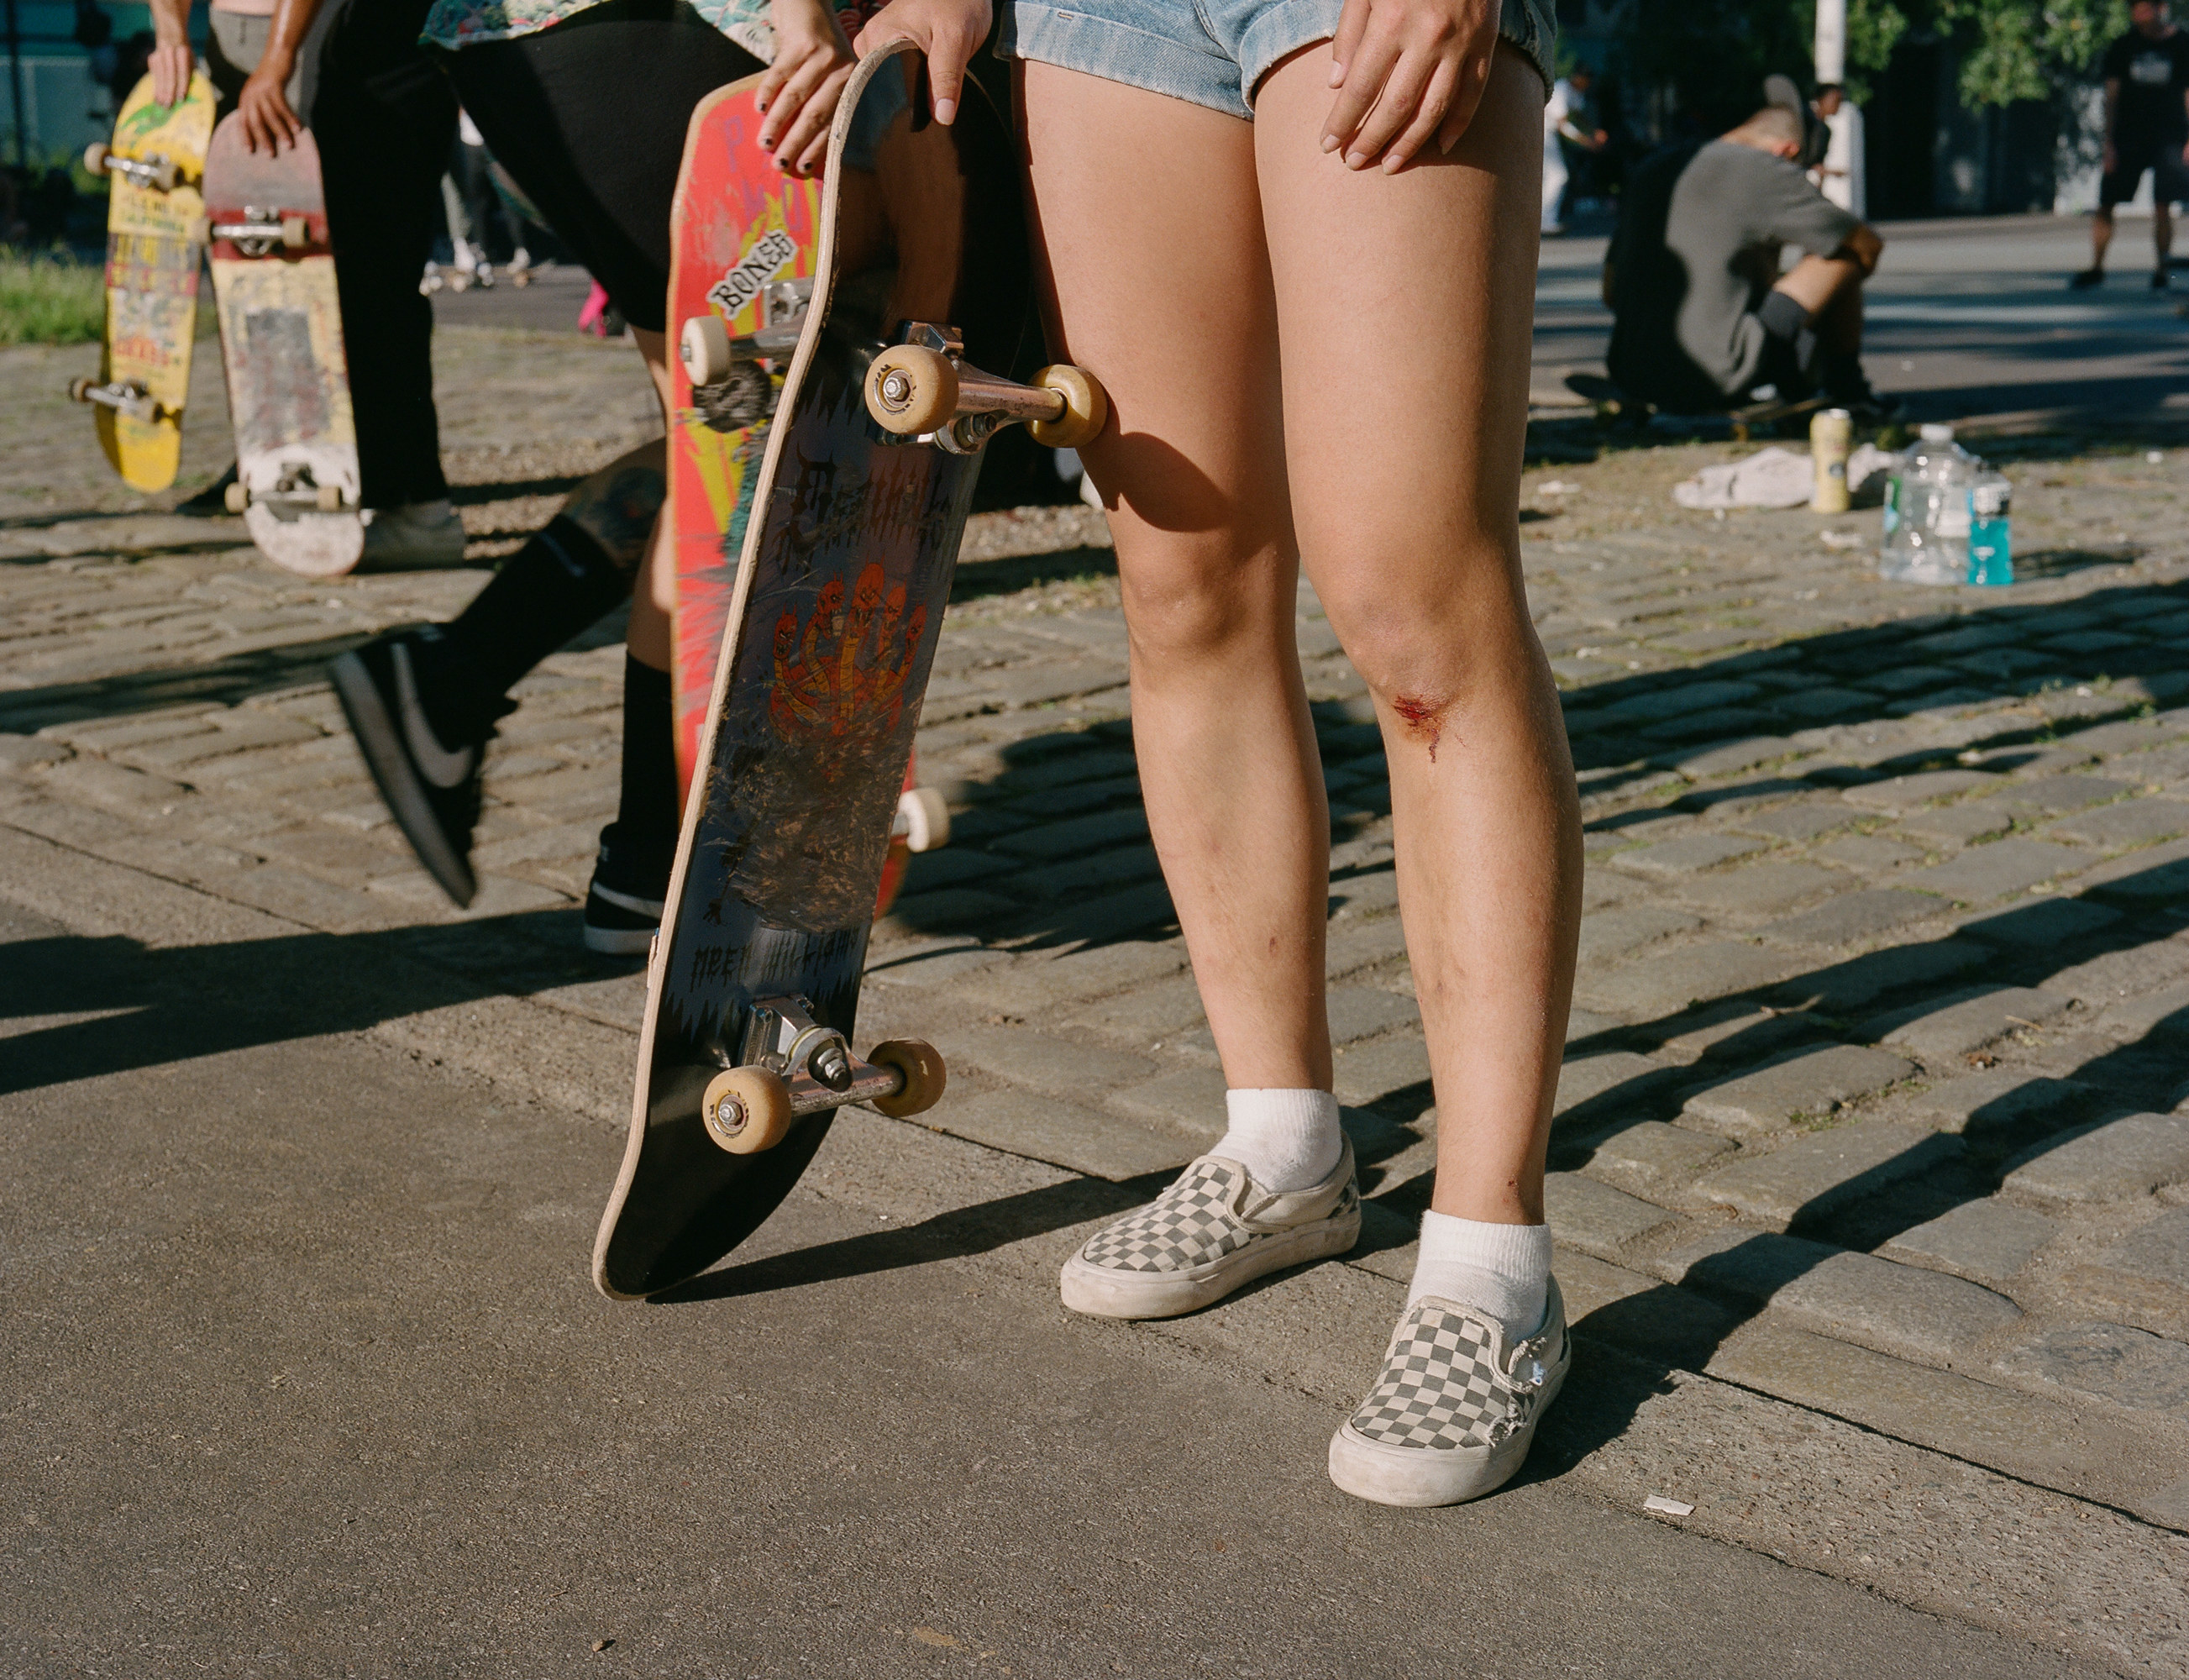 A woman with a cut knee and a skateboard